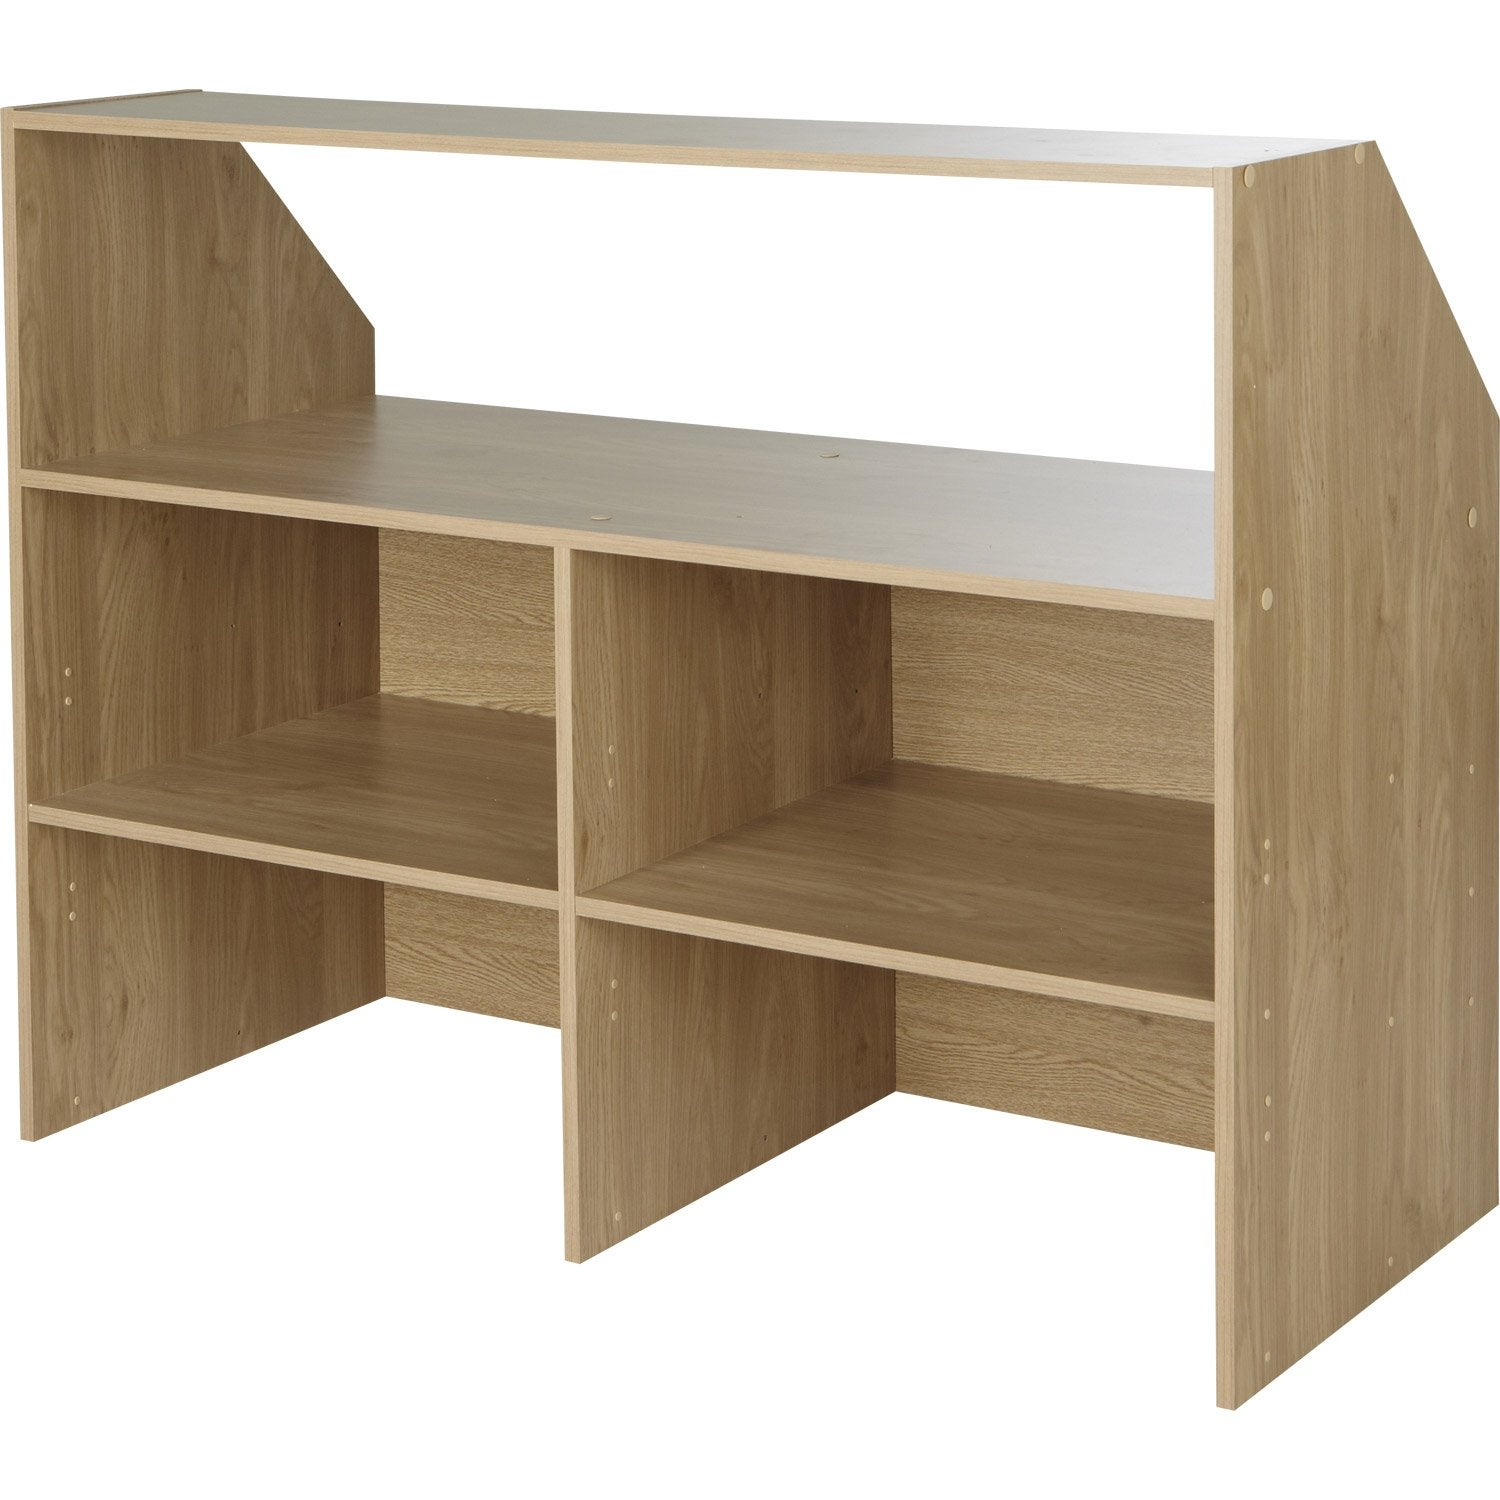 Ikea Conception Dressing Simple Dressing Room With Hosun Ching Walk